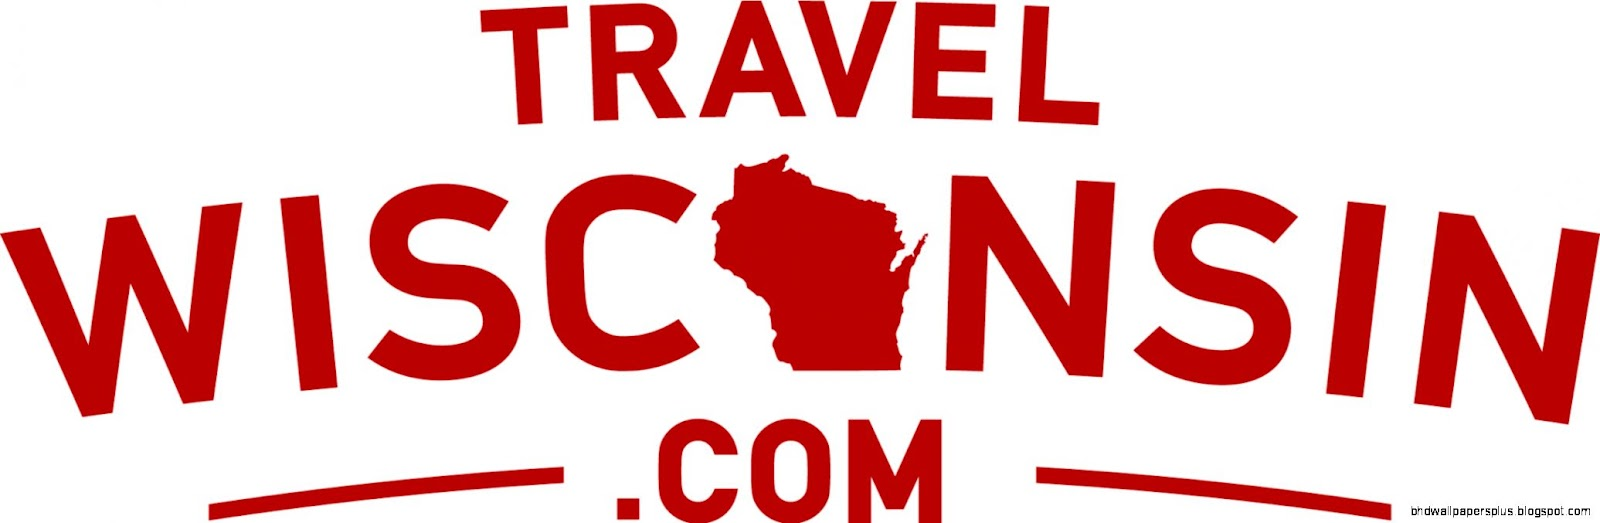 Wisconsin Tourism Secretary Nominated for Two Emmy Awards